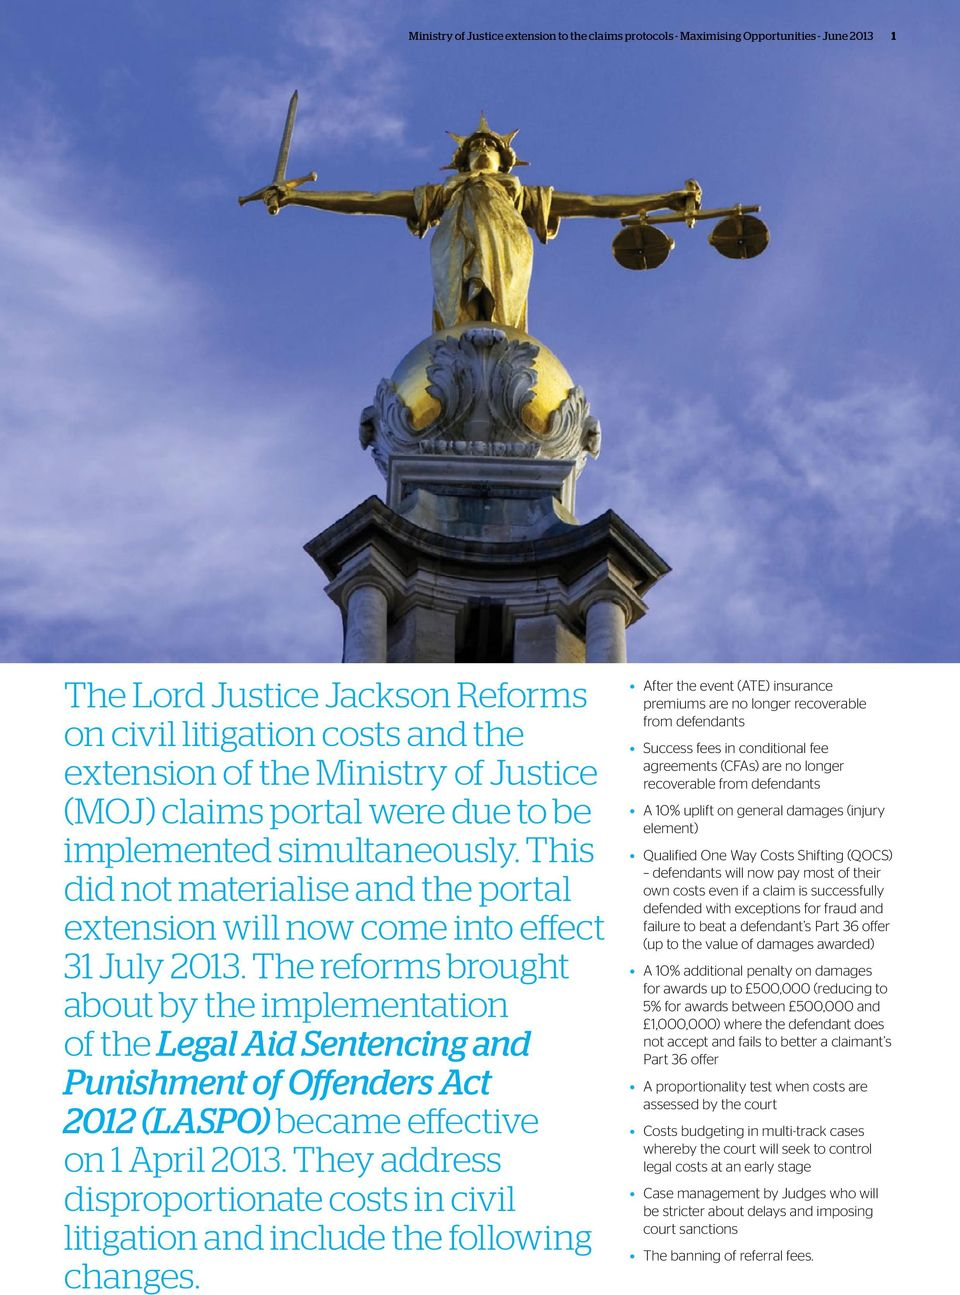 The reforms brought about by the implementation of the Legal Aid Sentencing and Punishment of Offenders Act 2012 (LASPO) became effective on 1 April 2013.